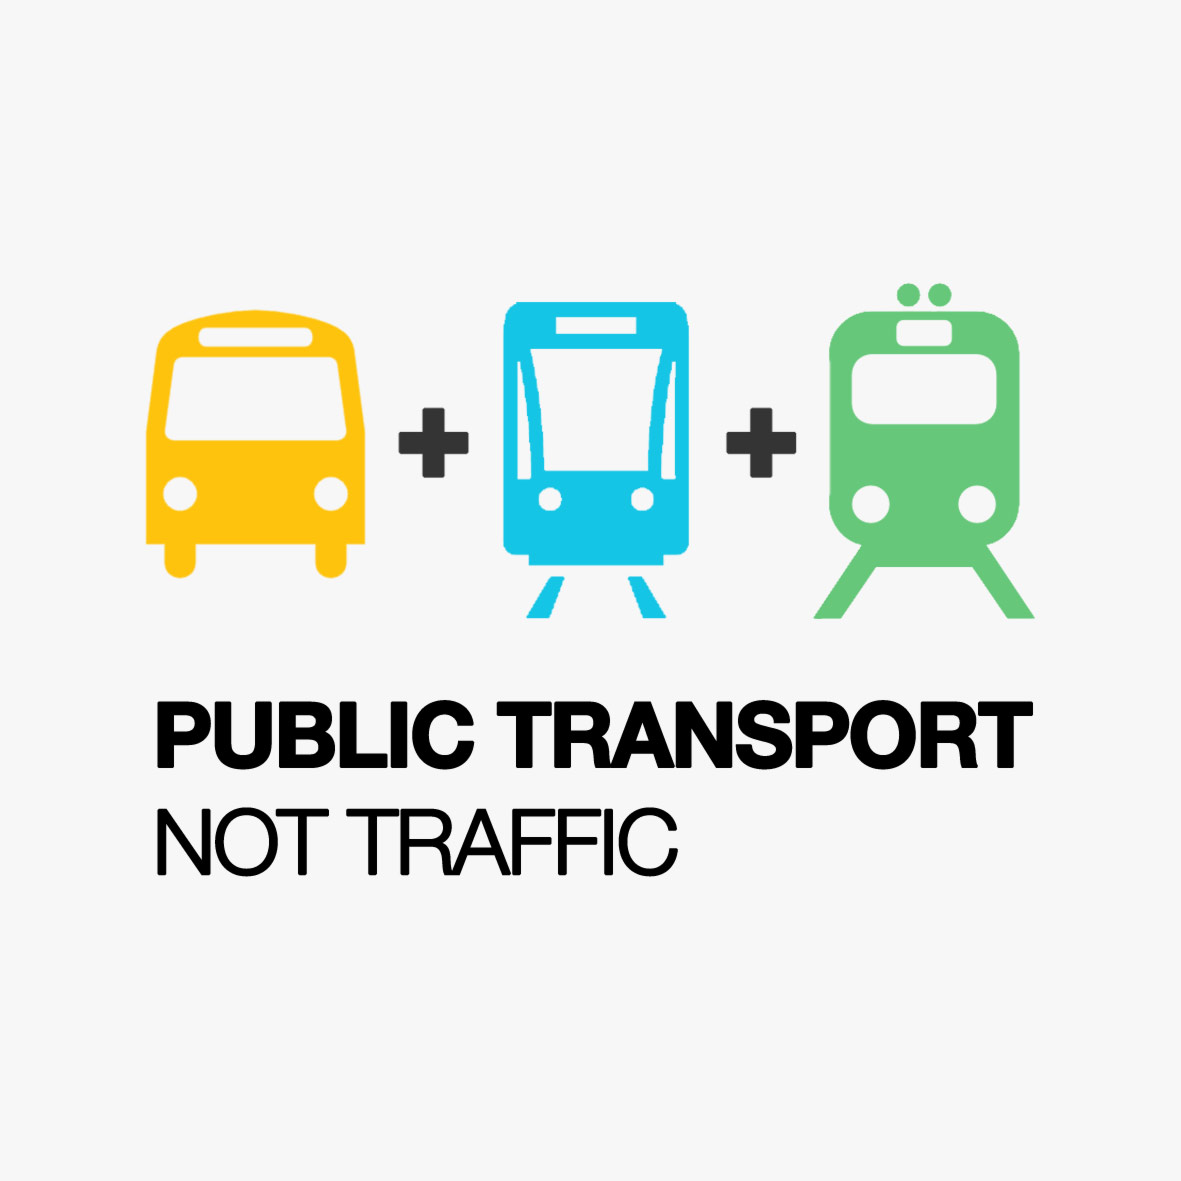 Public Transport Not Traffic